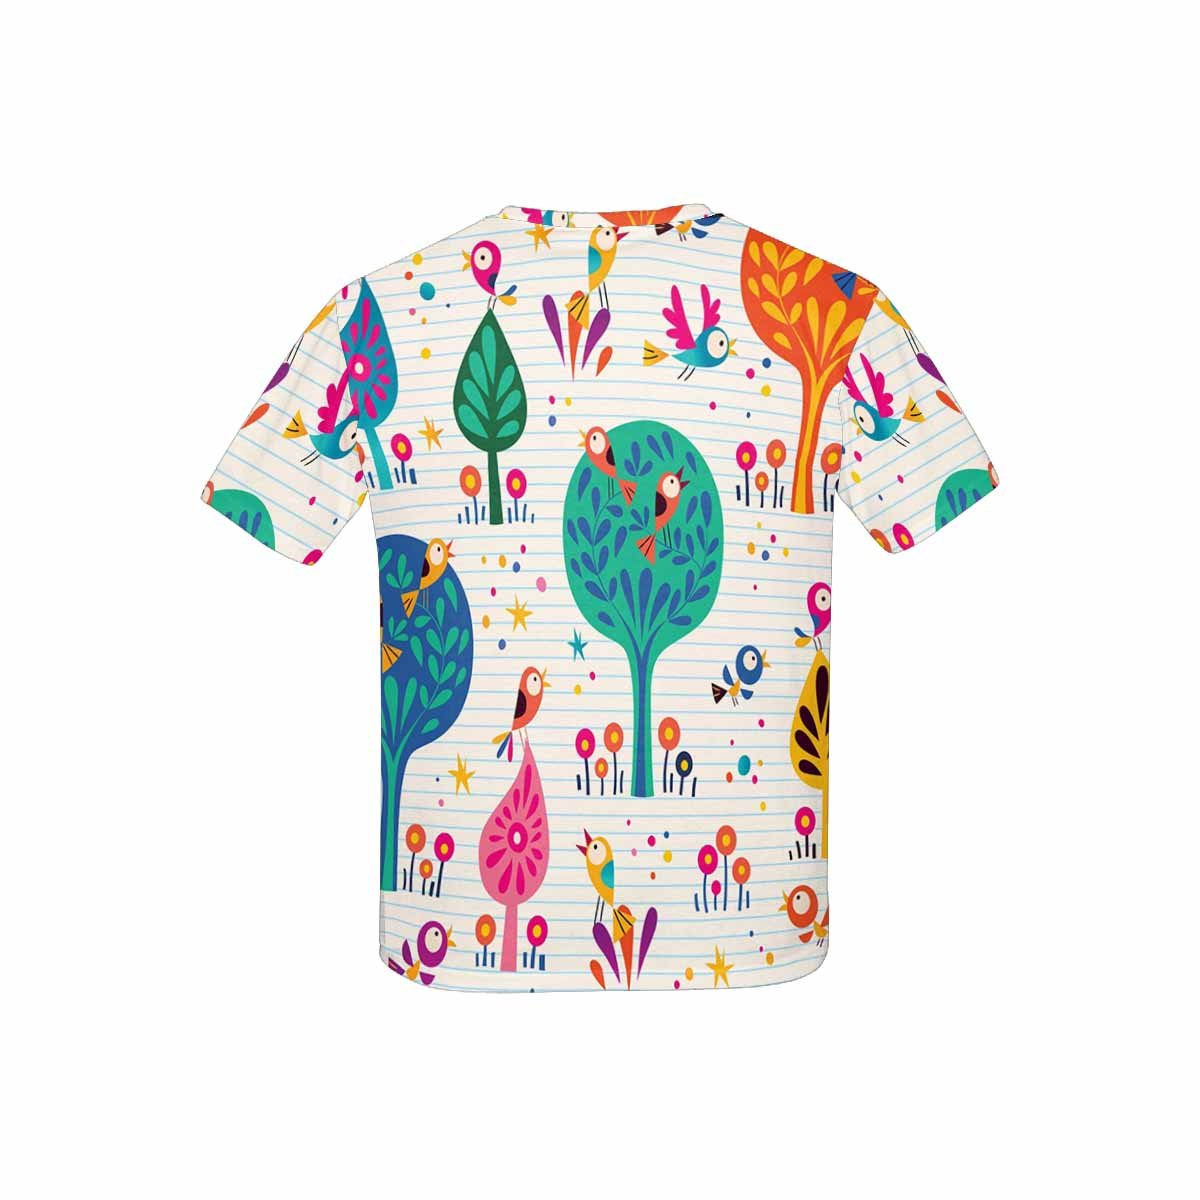 INTERESTPRINT Birds in The Trees Nature Lined Unisex Kids T-Shirts XS-XL